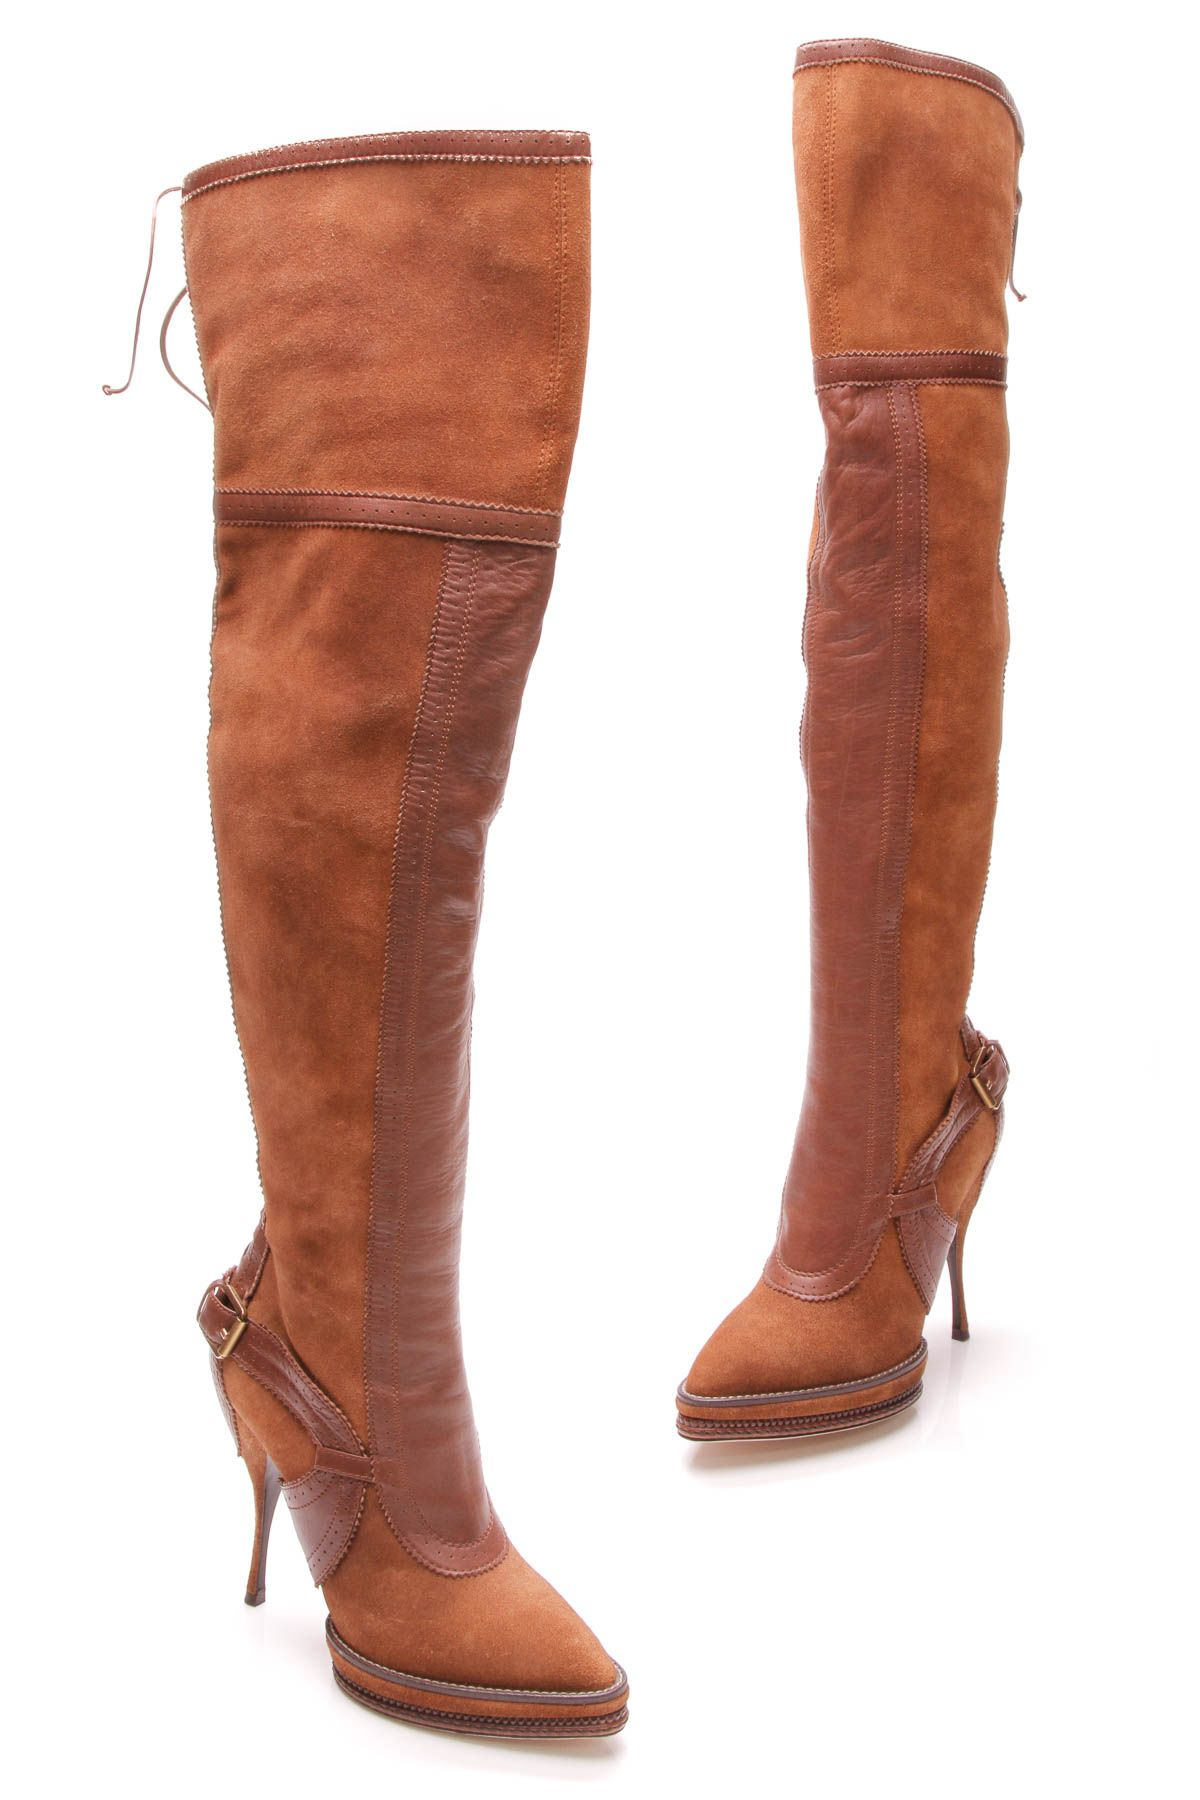 d1c336bbb00b Over The Knee Platform Boots - Brown Suede   Leather Size 40